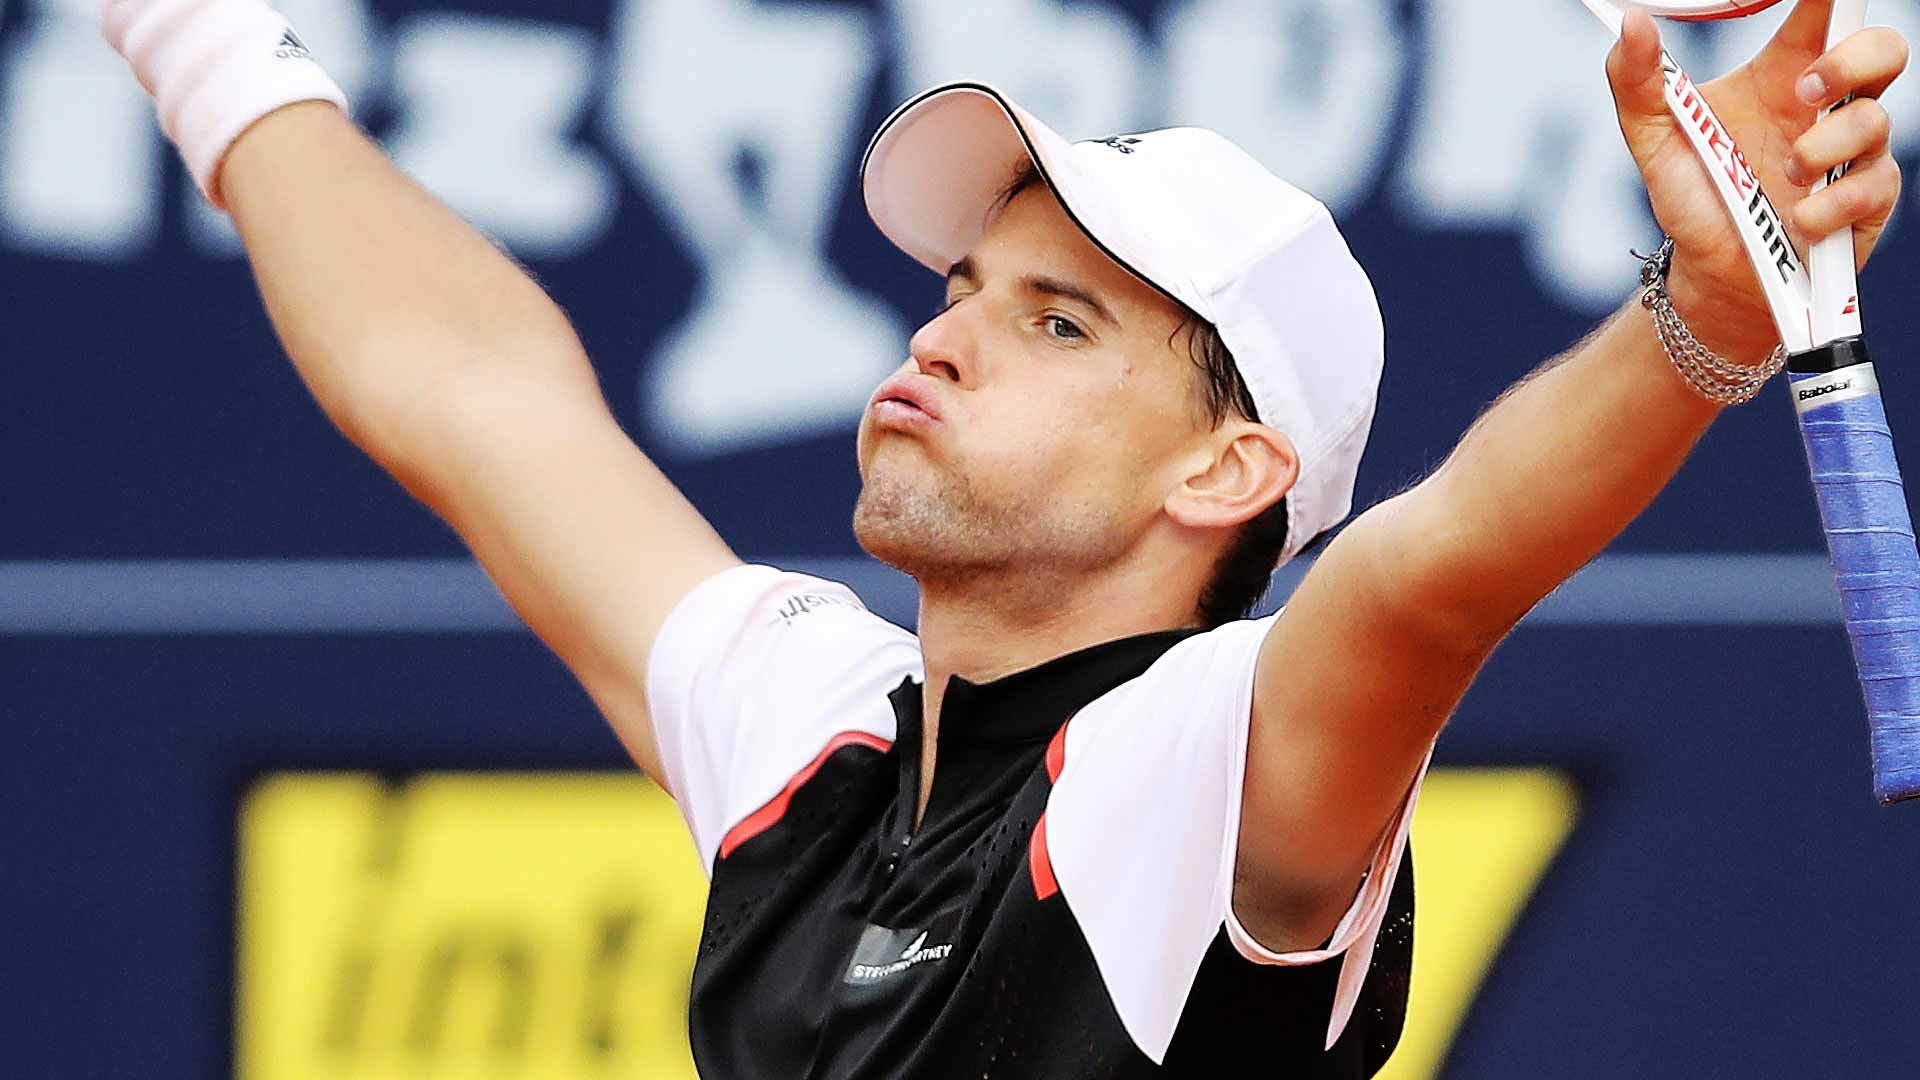 Dominic Thiem has accomplished a lot in 2019: winning his ...